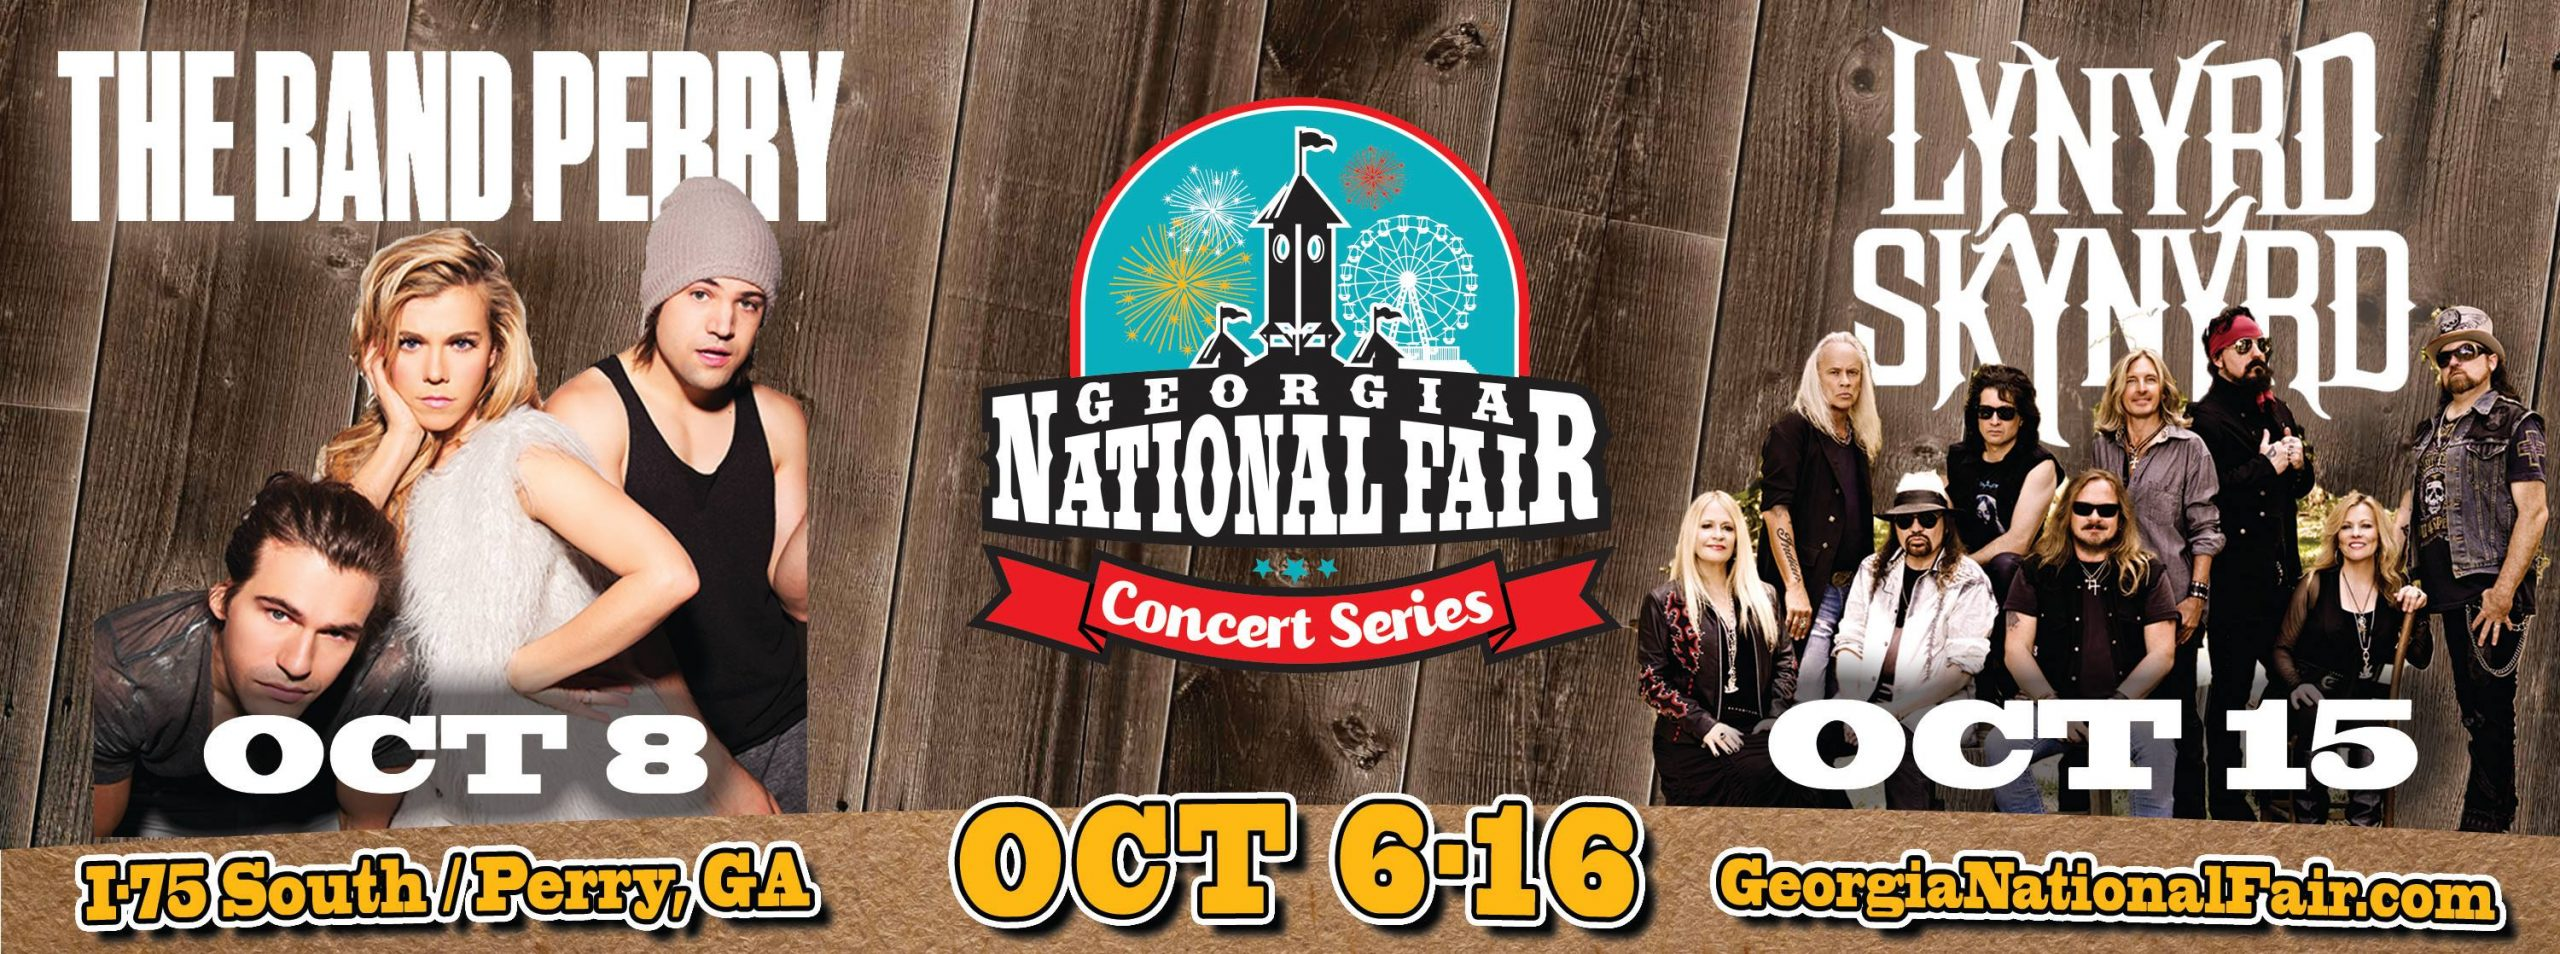 Georgia National Fair. Perry, Ga. Oct. 6-16 2016